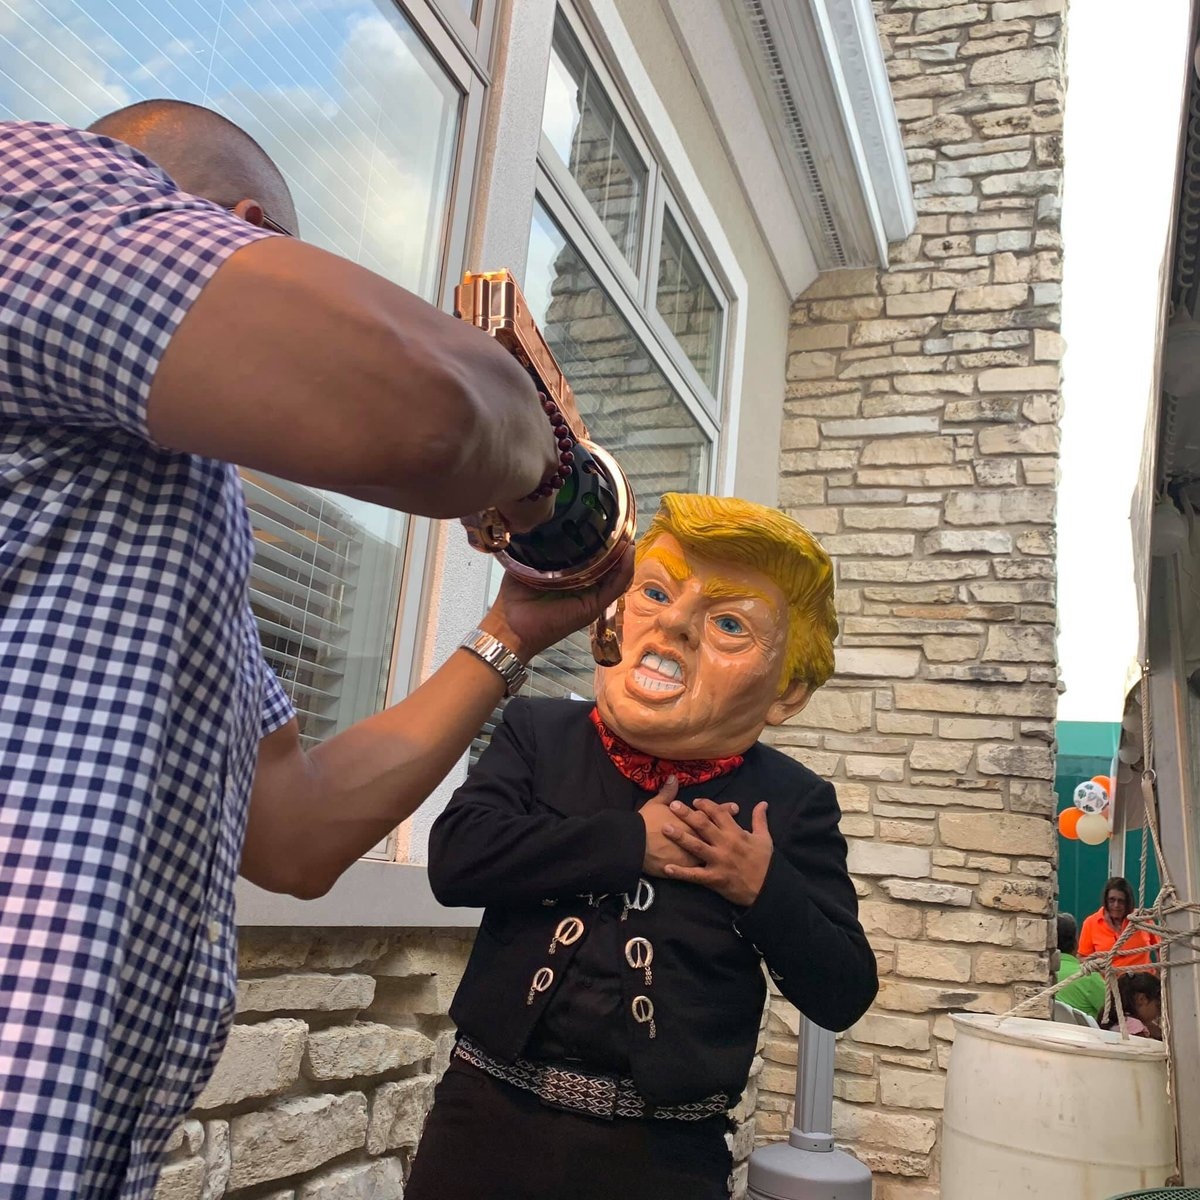 A political fundraiser for @SenatorSandoval simulates an assassination attempt against a mock @realDonaldTrump decked out in Mexican garb. Looks like a man pointed a fake assault weapon at the fake President to pose for a picture.